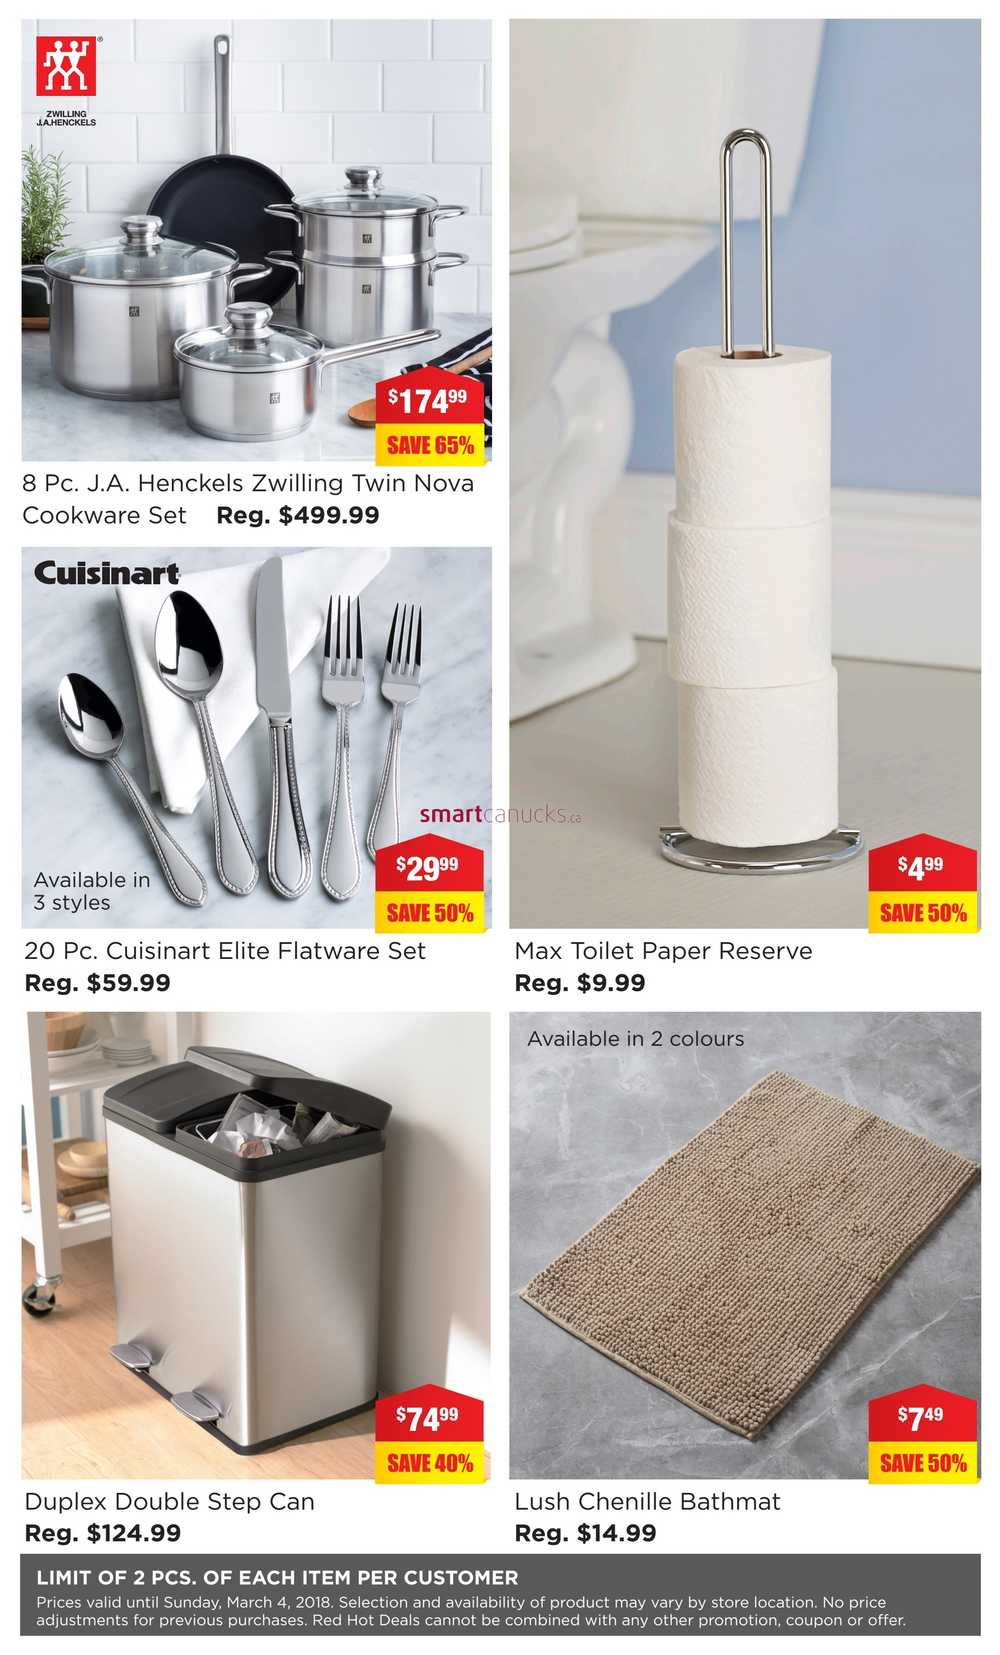 Kitchen Stuff Plus Red Hot Deals Flyer February 26 to March 4